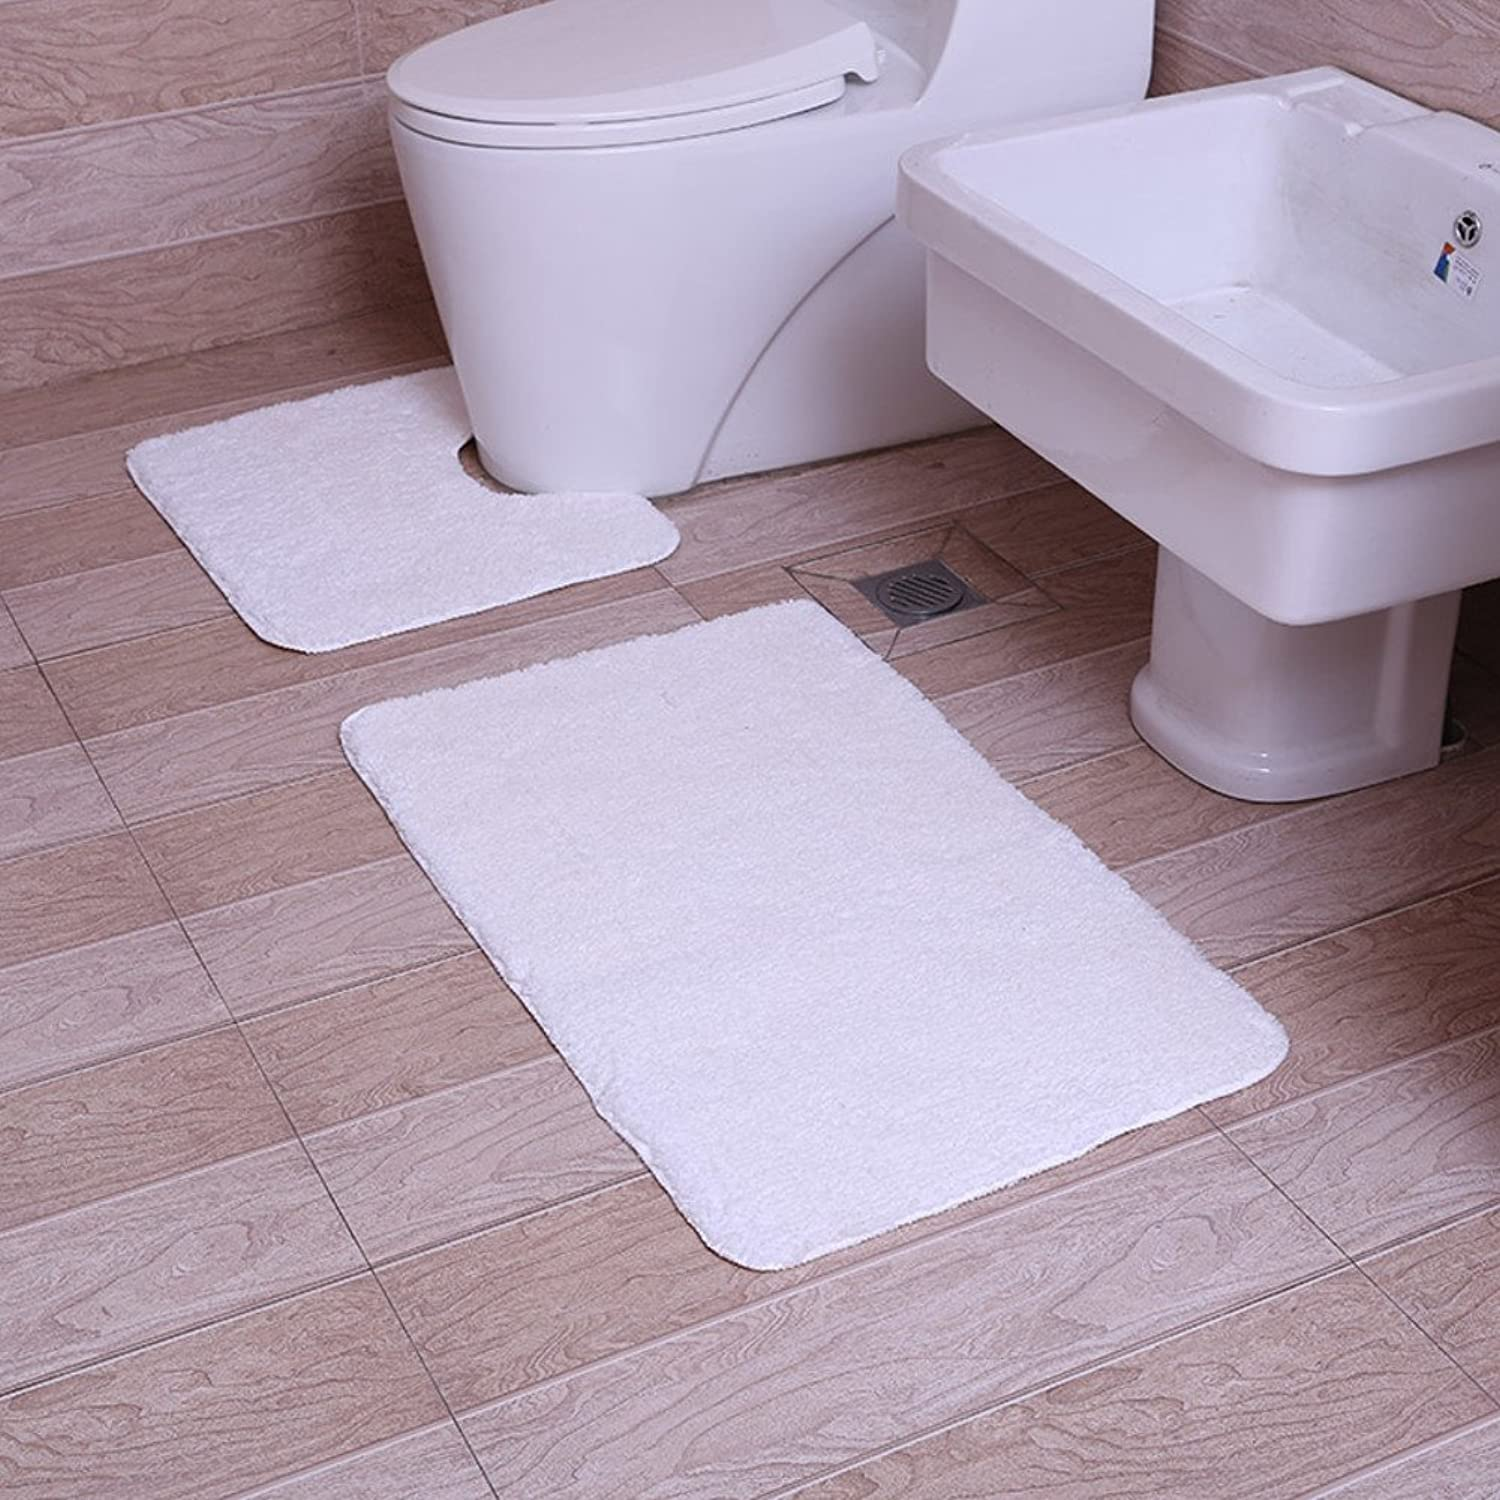 DXG&FX Bathroom u-shaped toilet mat vacuums absorbing water door mats home skid mats-A 45x50cm(18x20inch)